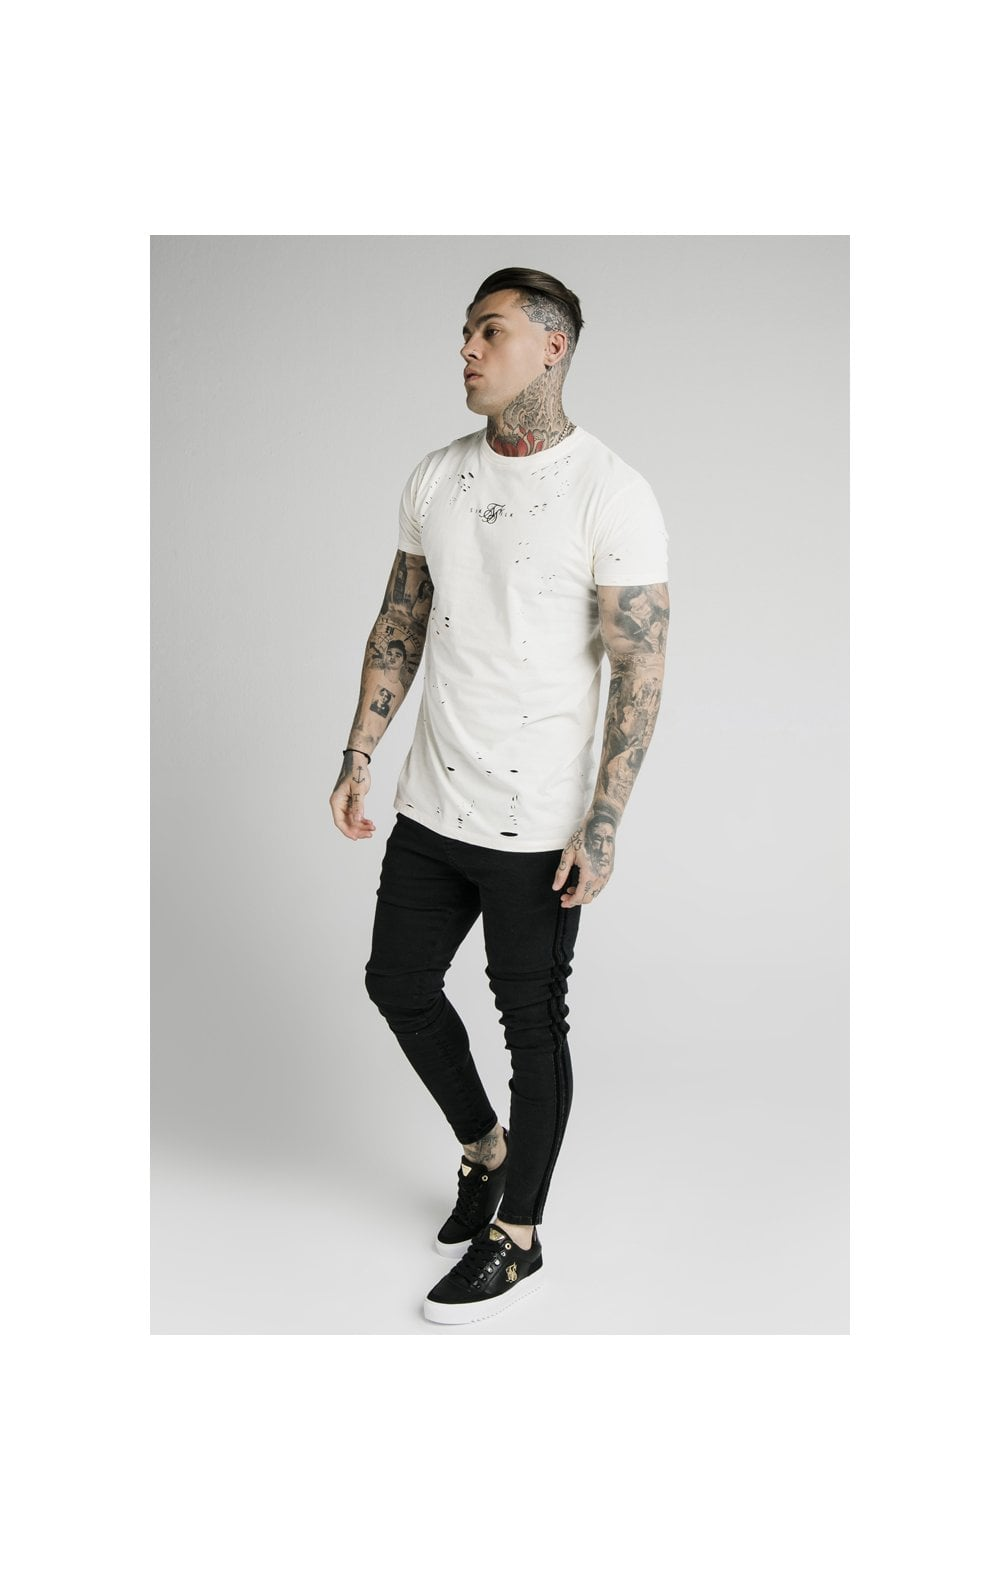 SikSilk S/S Distressed Box Tee - Off White (3)